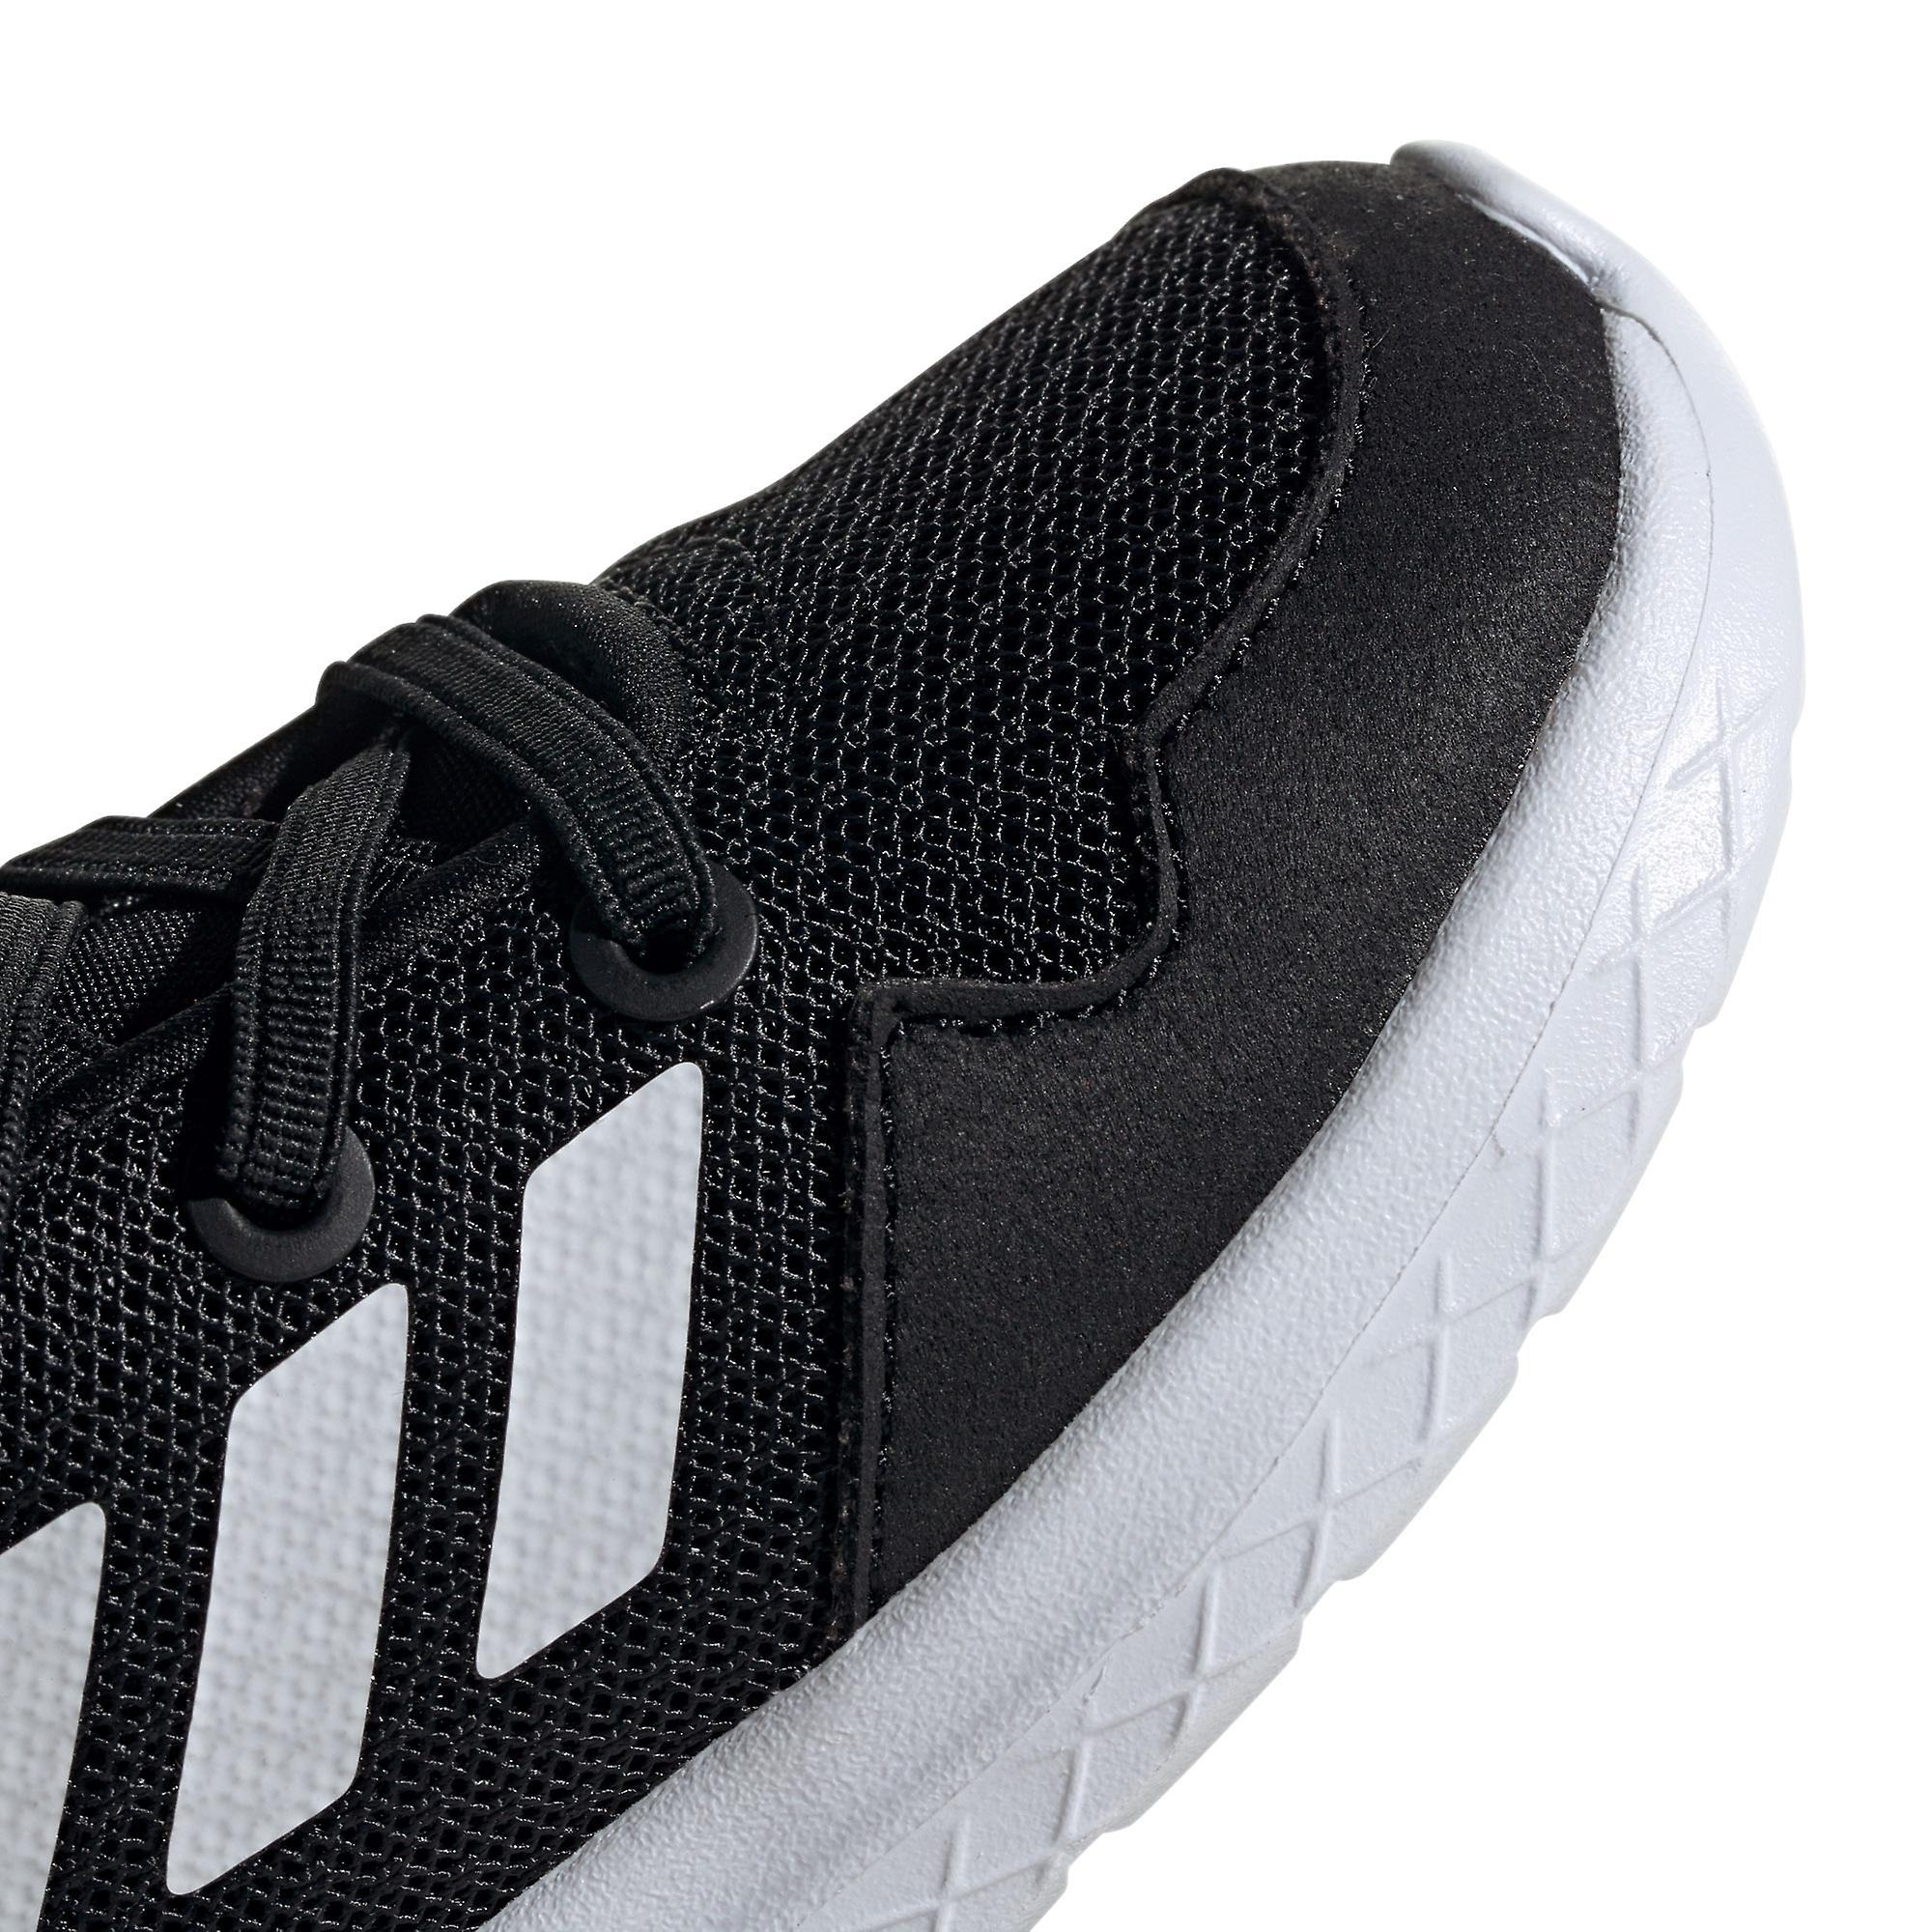 adidas Archivo Infant Toddler Kids Sports Trainer Shoe Black/White